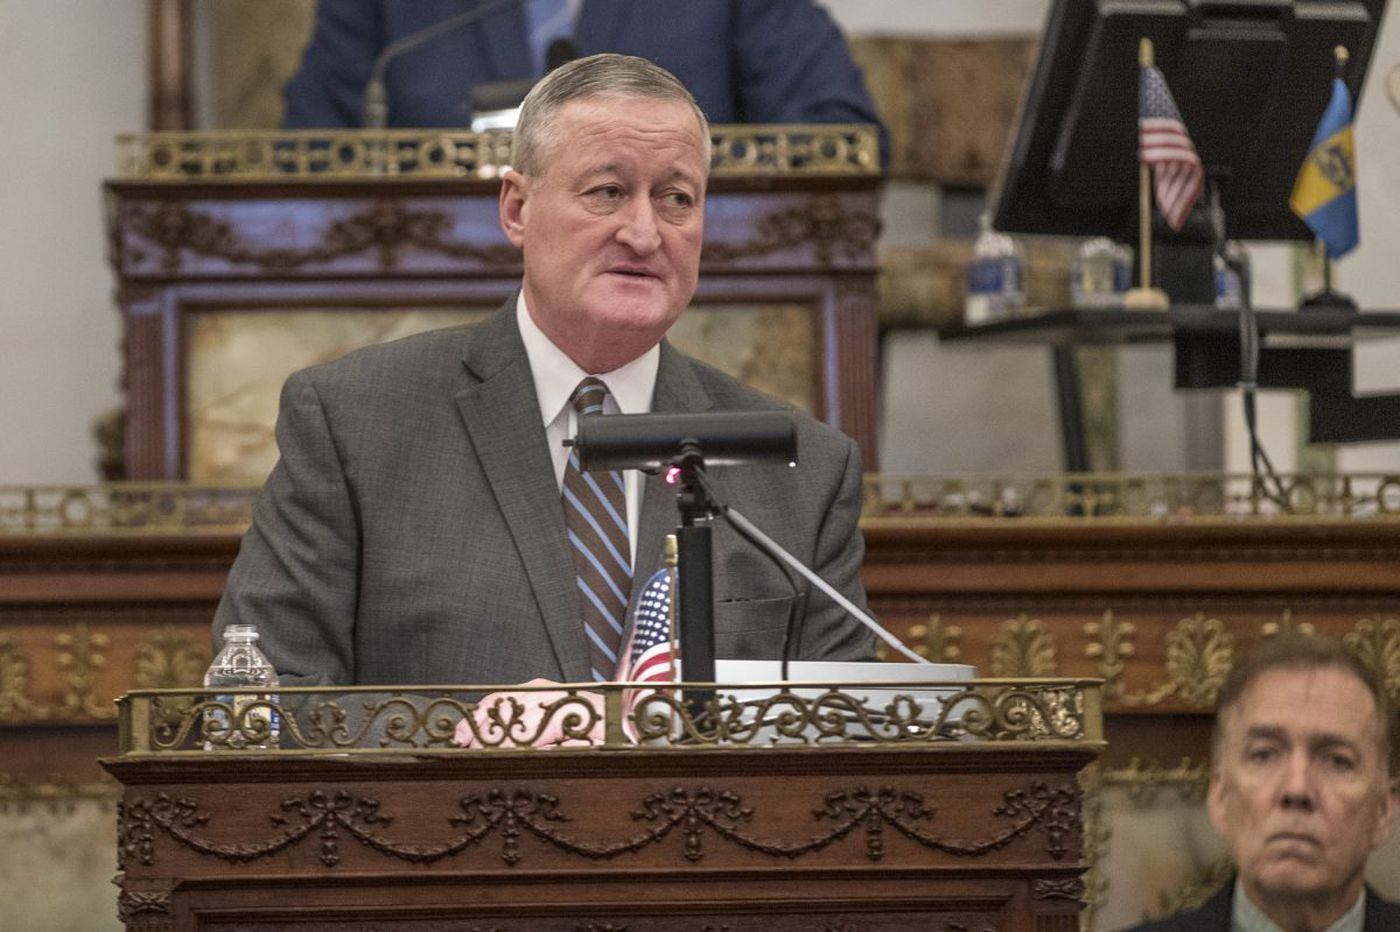 Before pushing tax increases, Mayor Kenney needs to cut the fat | Opinion